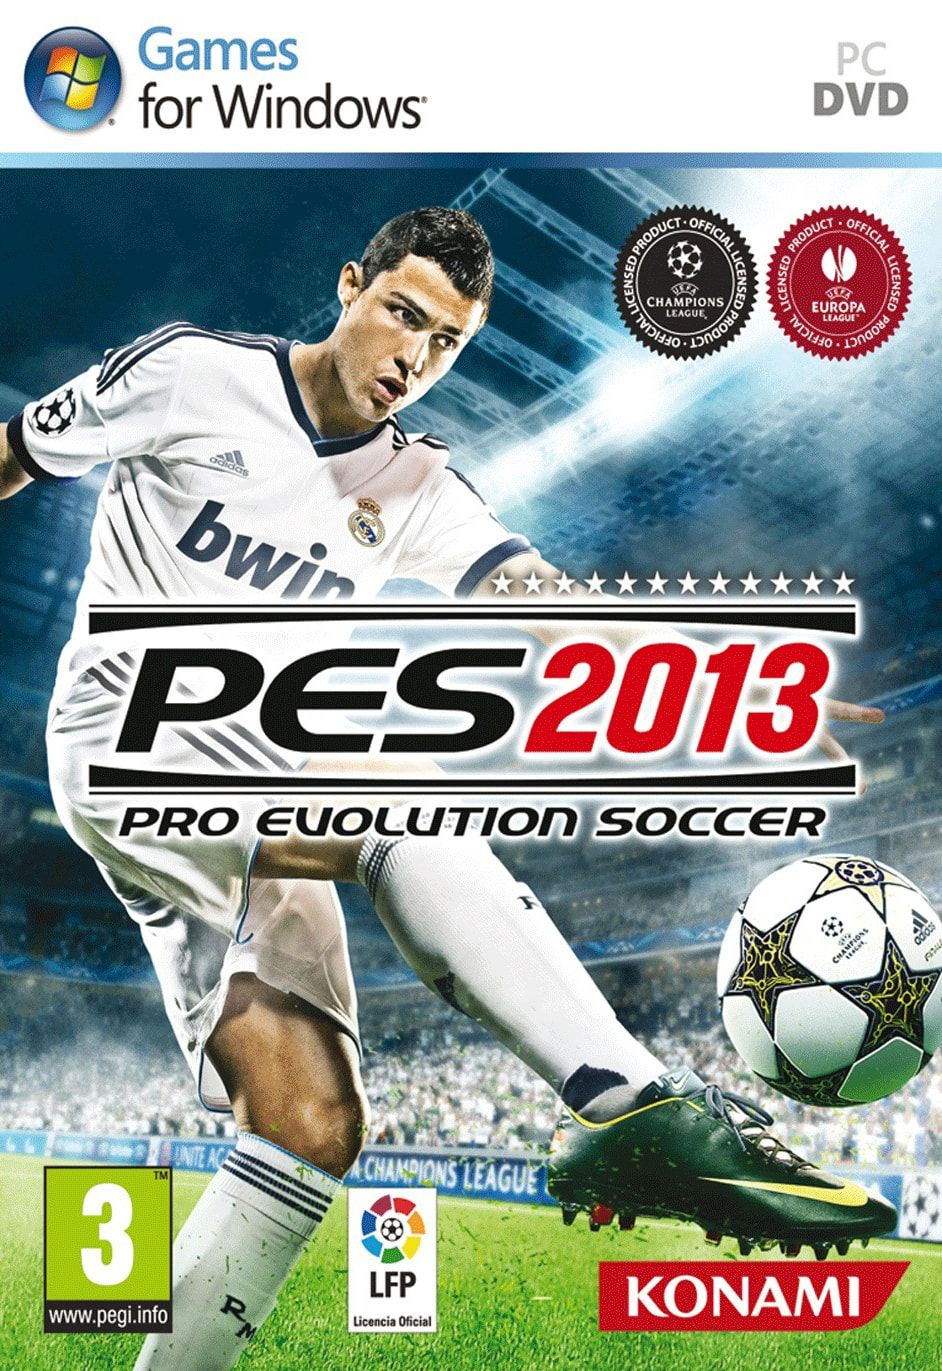 Download Game PES 2013 Repack + Patch 2018 Gratis